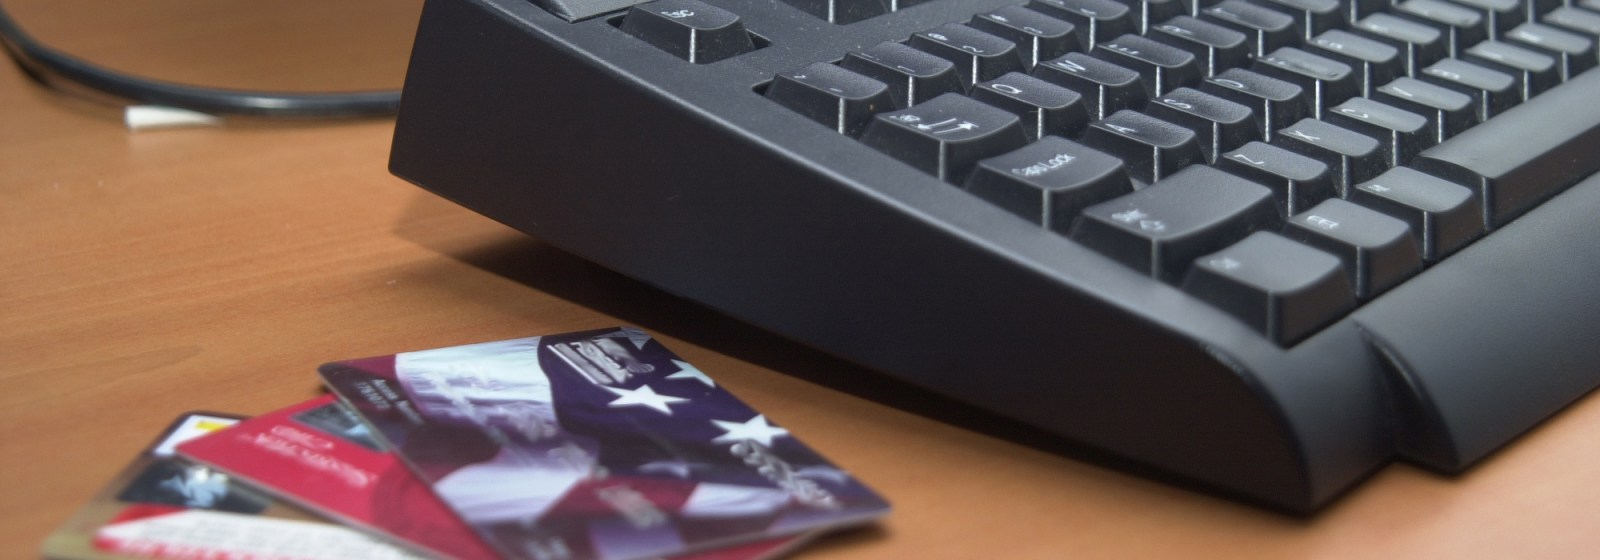 Credit card fraud and stalled innovation